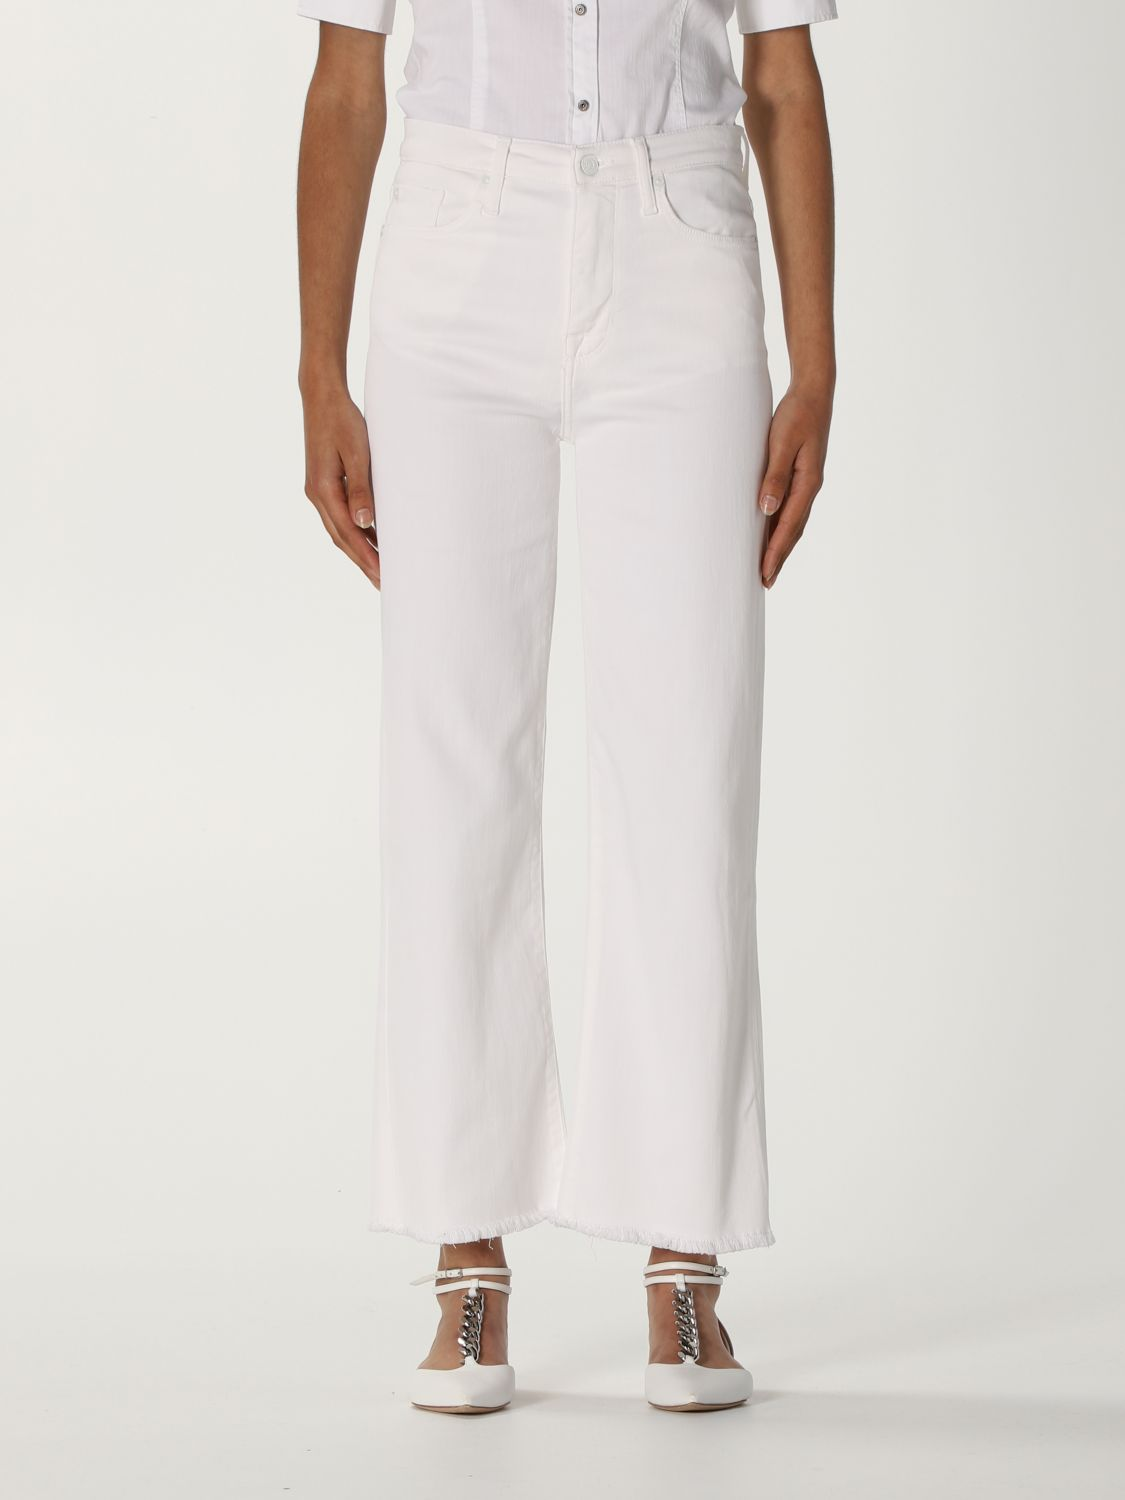 Jeans 7 For All Mankind: Jeans mujer 7 For All Mankind blanco 1